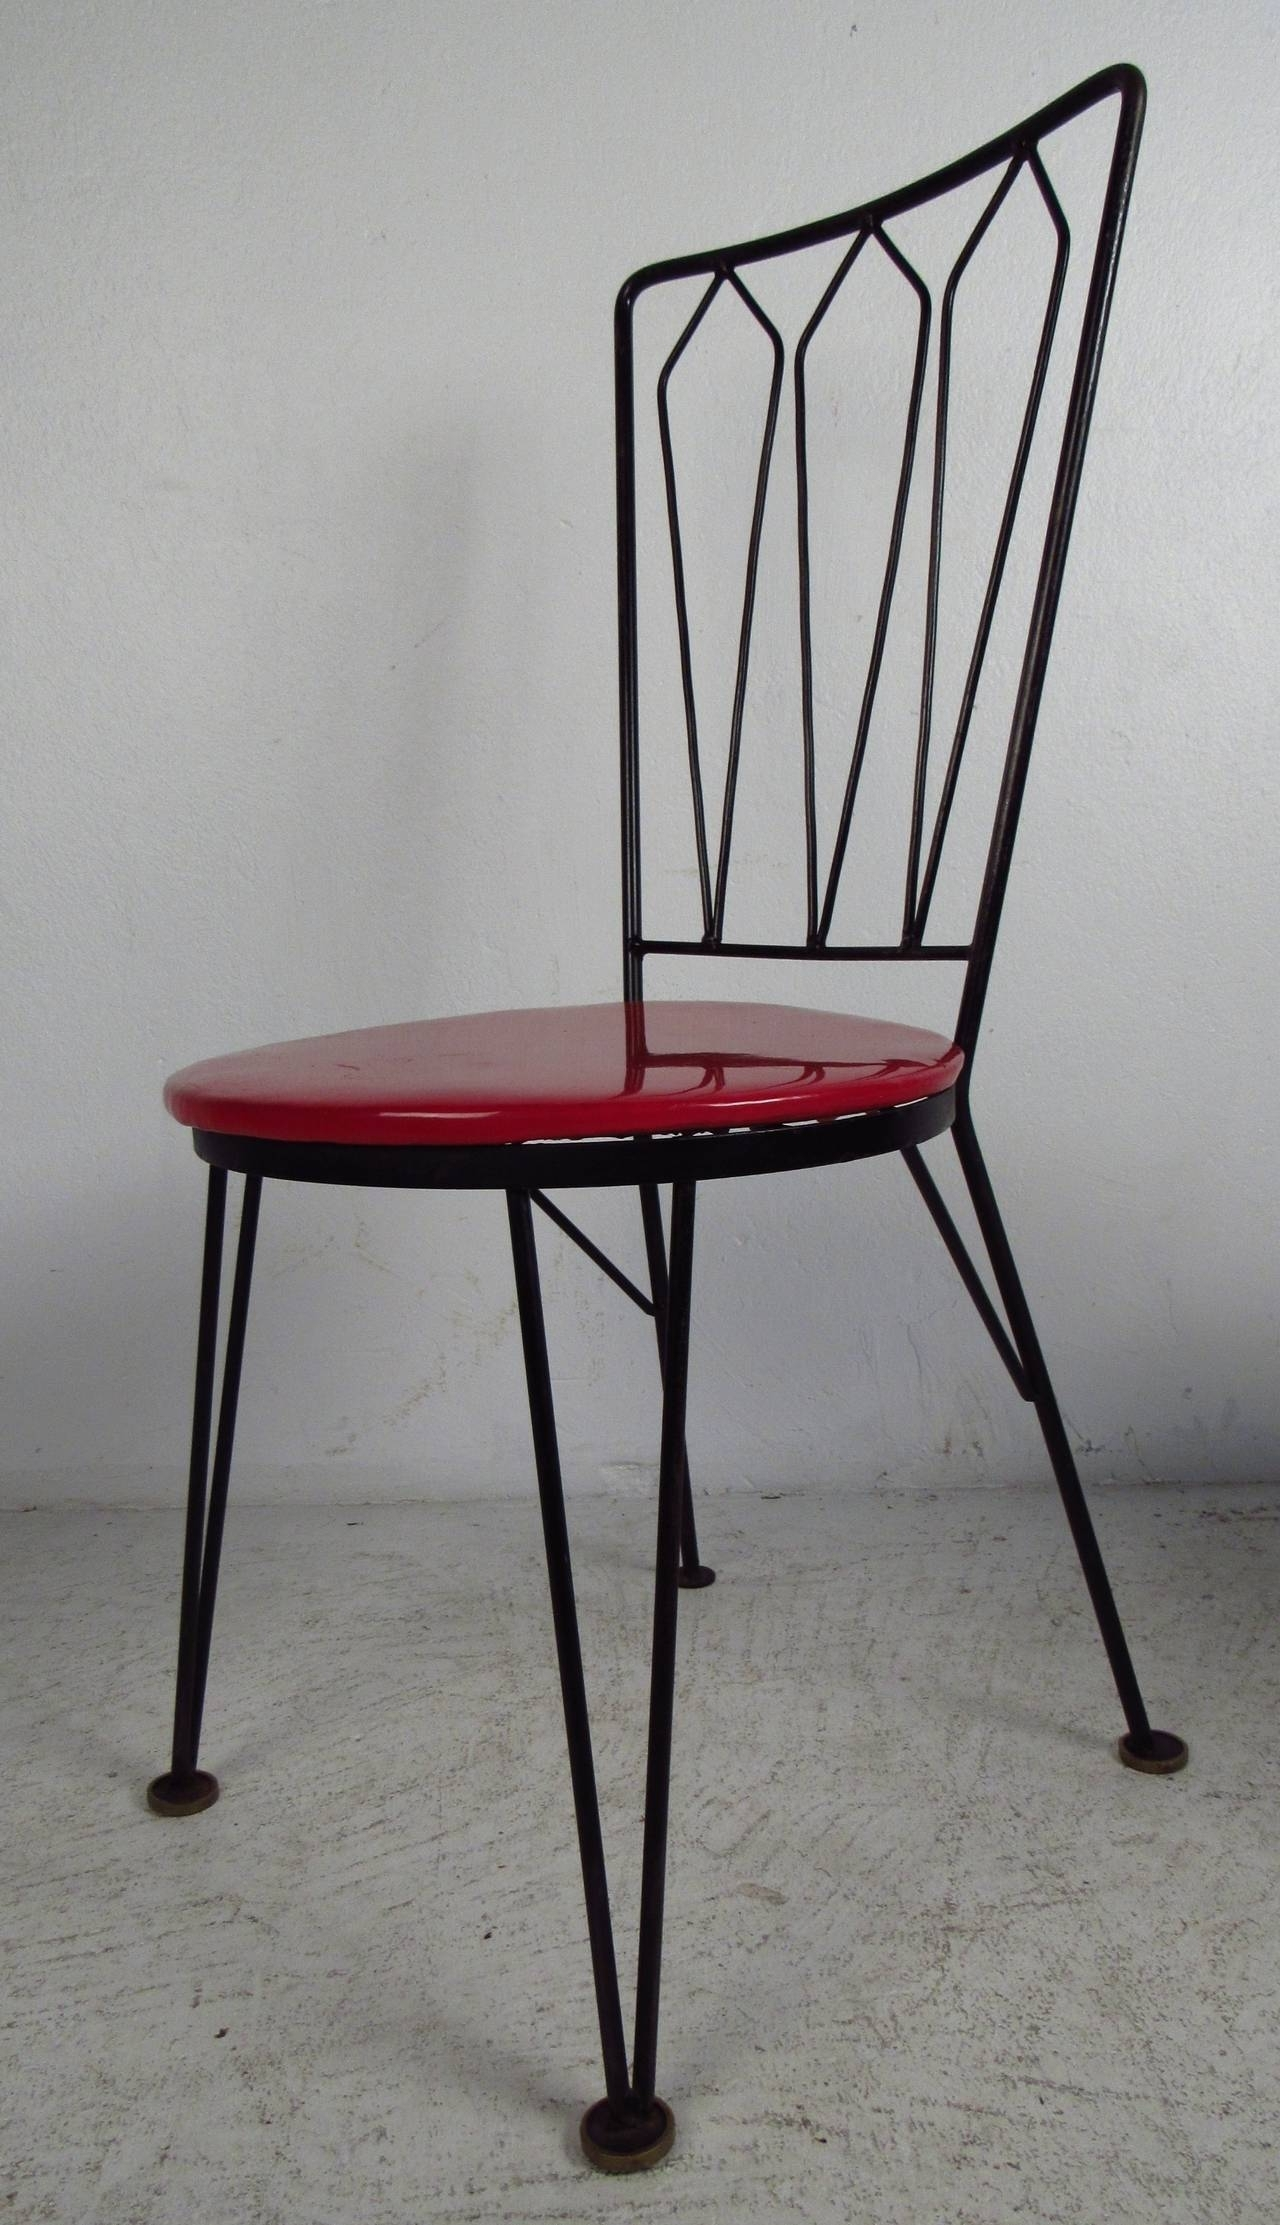 2017 Stylish Dining Chairs In Stylish Vintage Metal Dining Chairs, Circa 1950S For Sale At 1Stdibs (View 3 of 25)